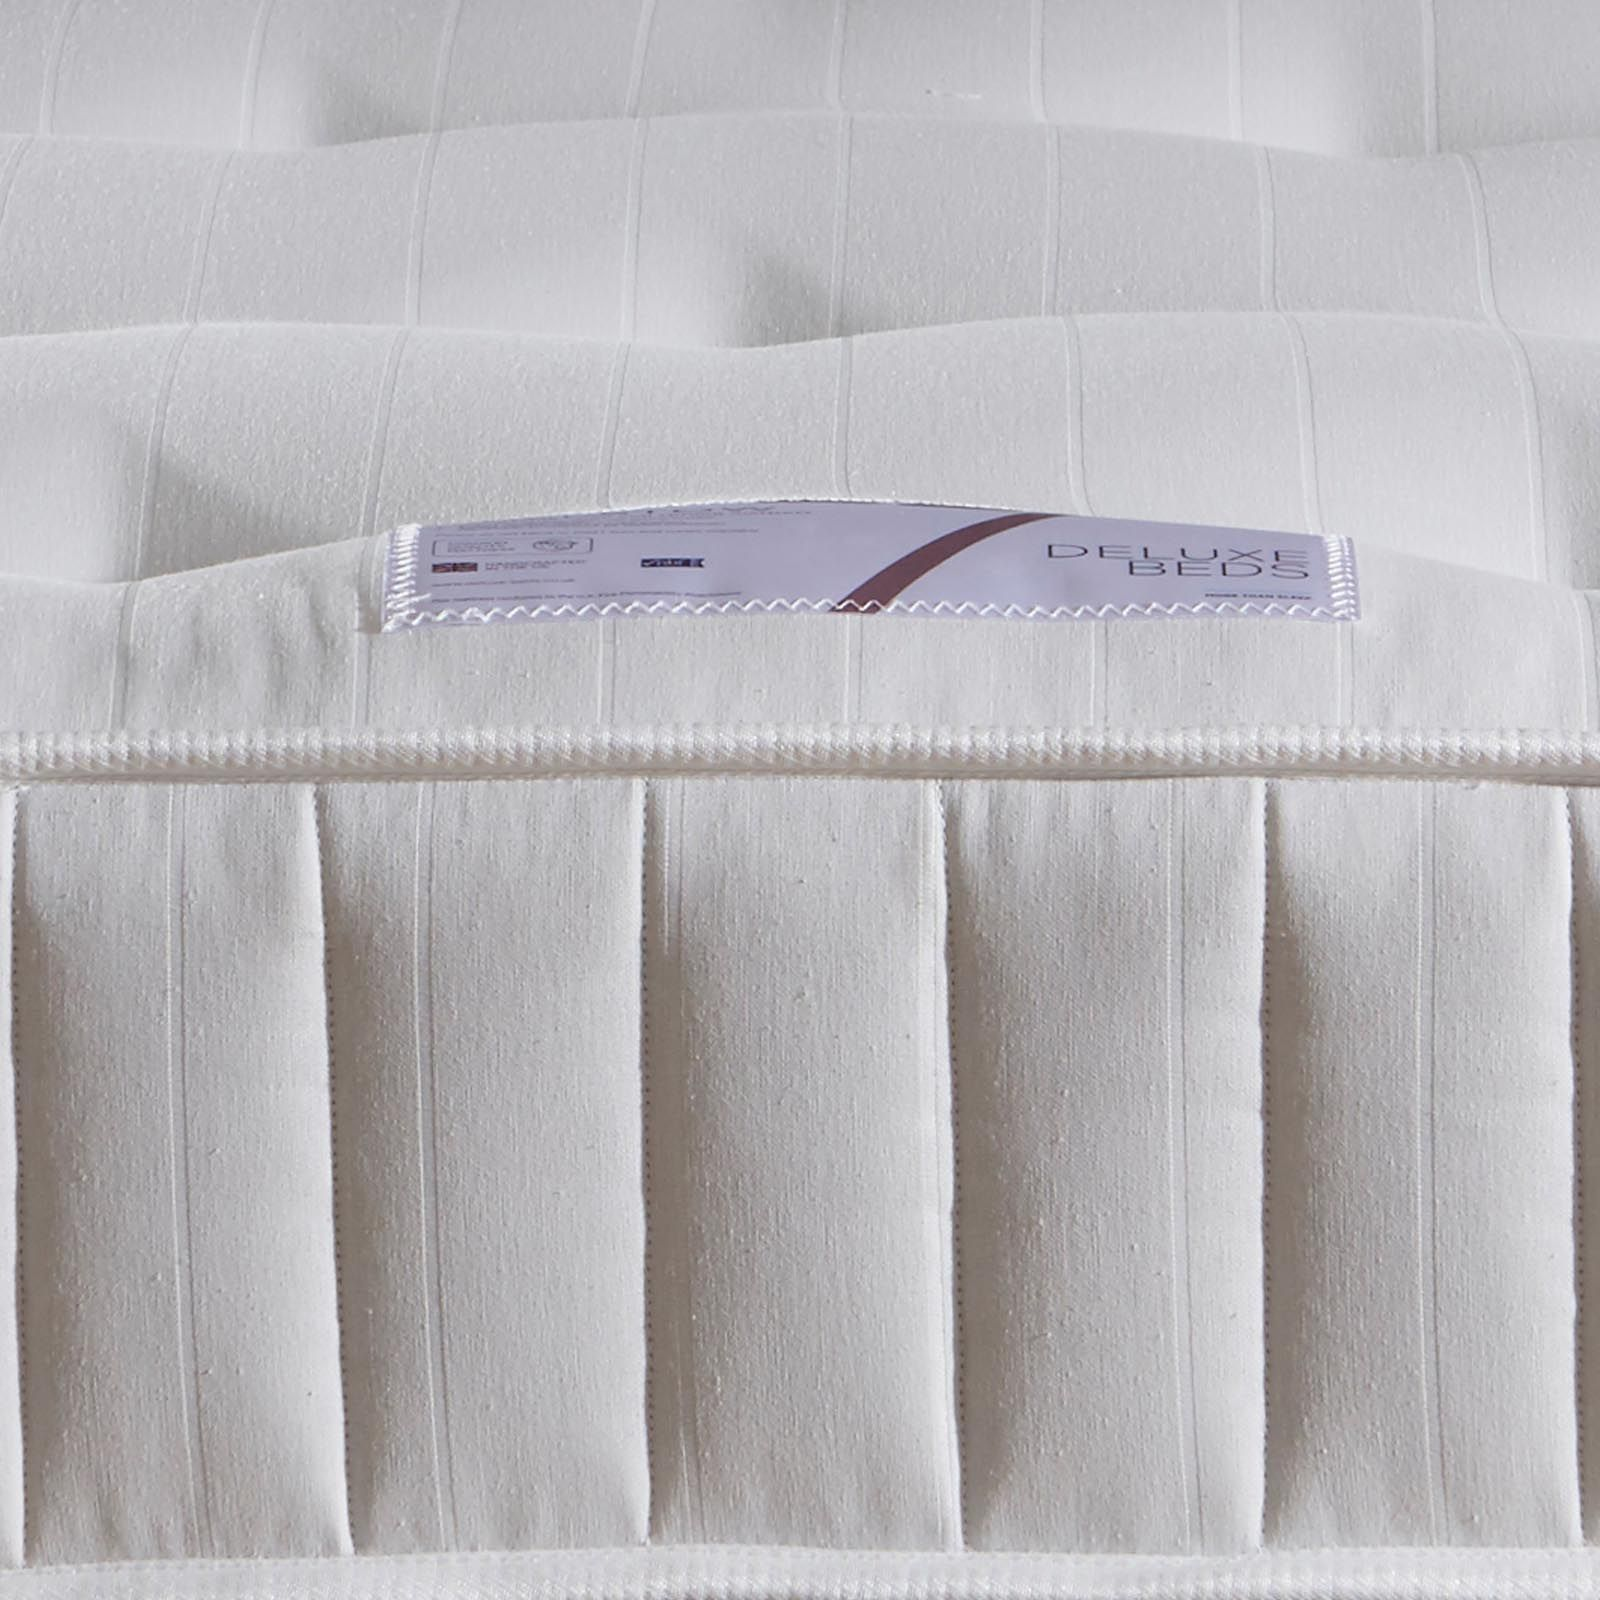 a premium medium to firm mattress using agro open coil springs